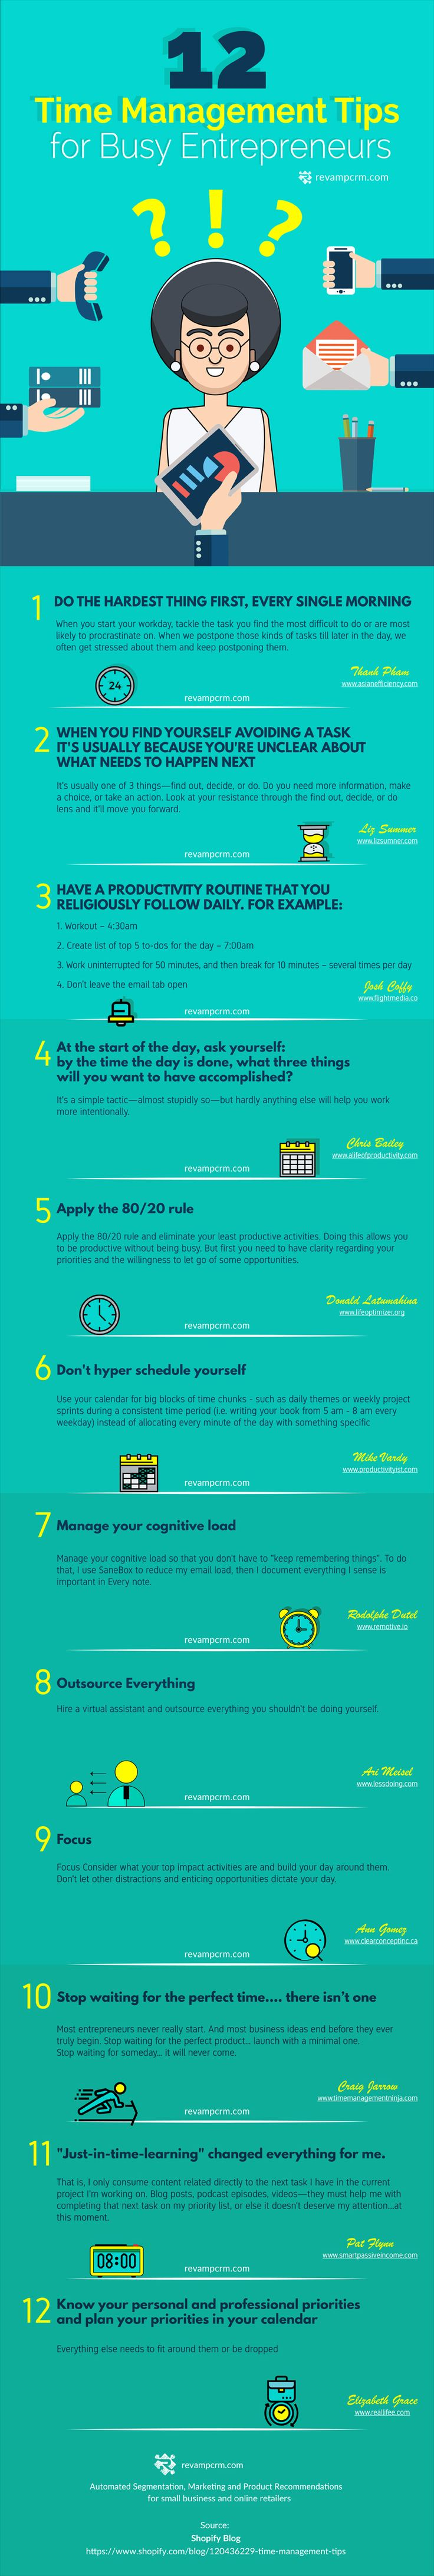 Some of the most incredible time management tips for entrepreneurs that will keep you organized and effective.